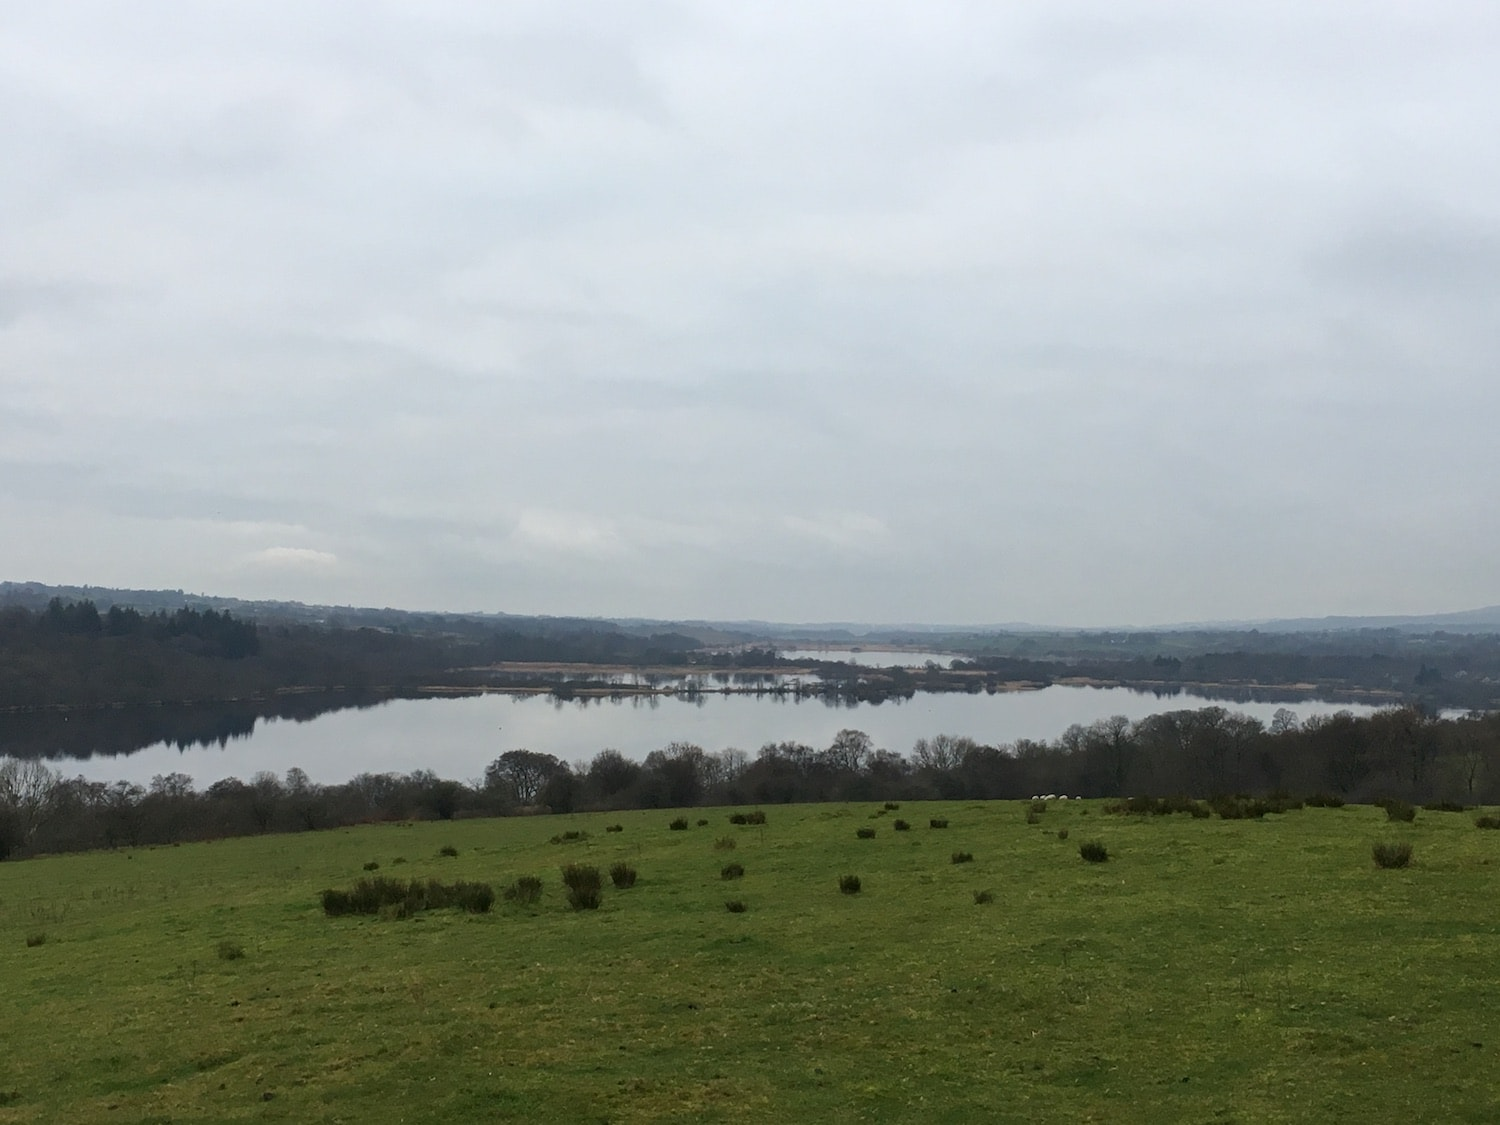 Looking south over Castle Semple Loch, the top of Barr Loch can also be seen towards the horizon